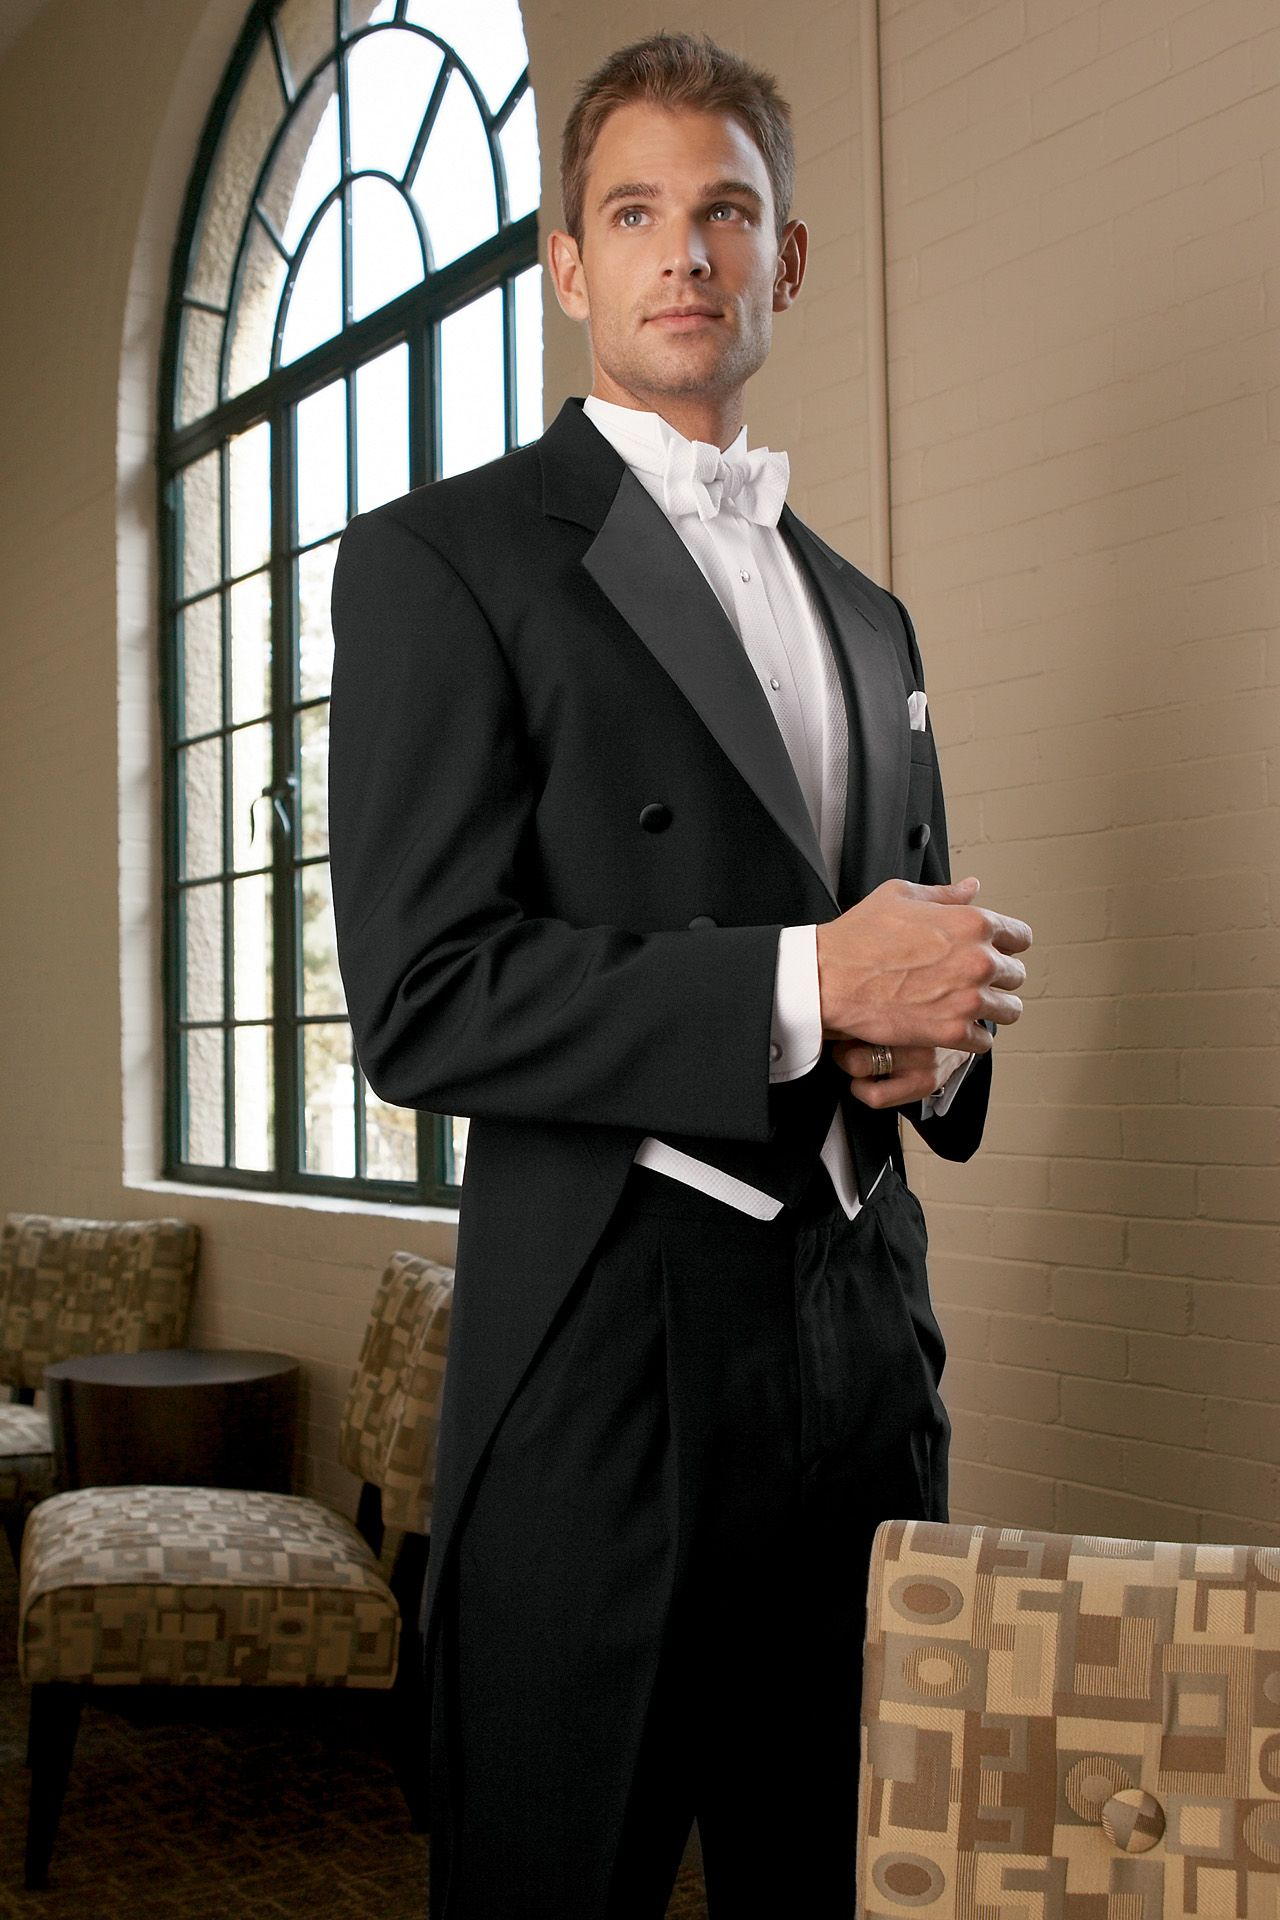 Ideal For An Elegant White Tie Wedding Or Event The Clic Notch Full Dress